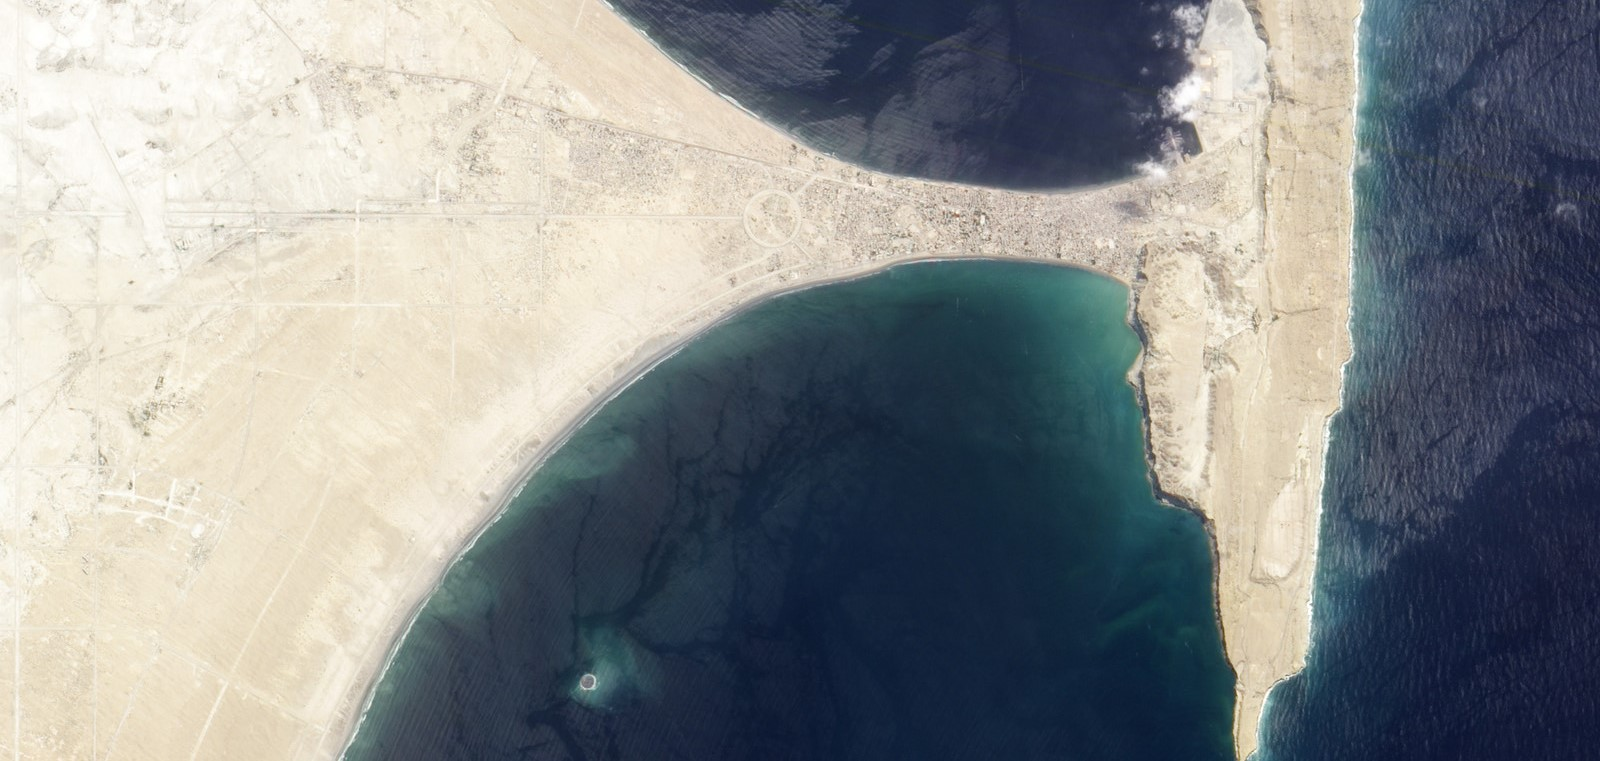 Gwadar, Pakistan, March 2017 (Photo: Flickr/NASA)